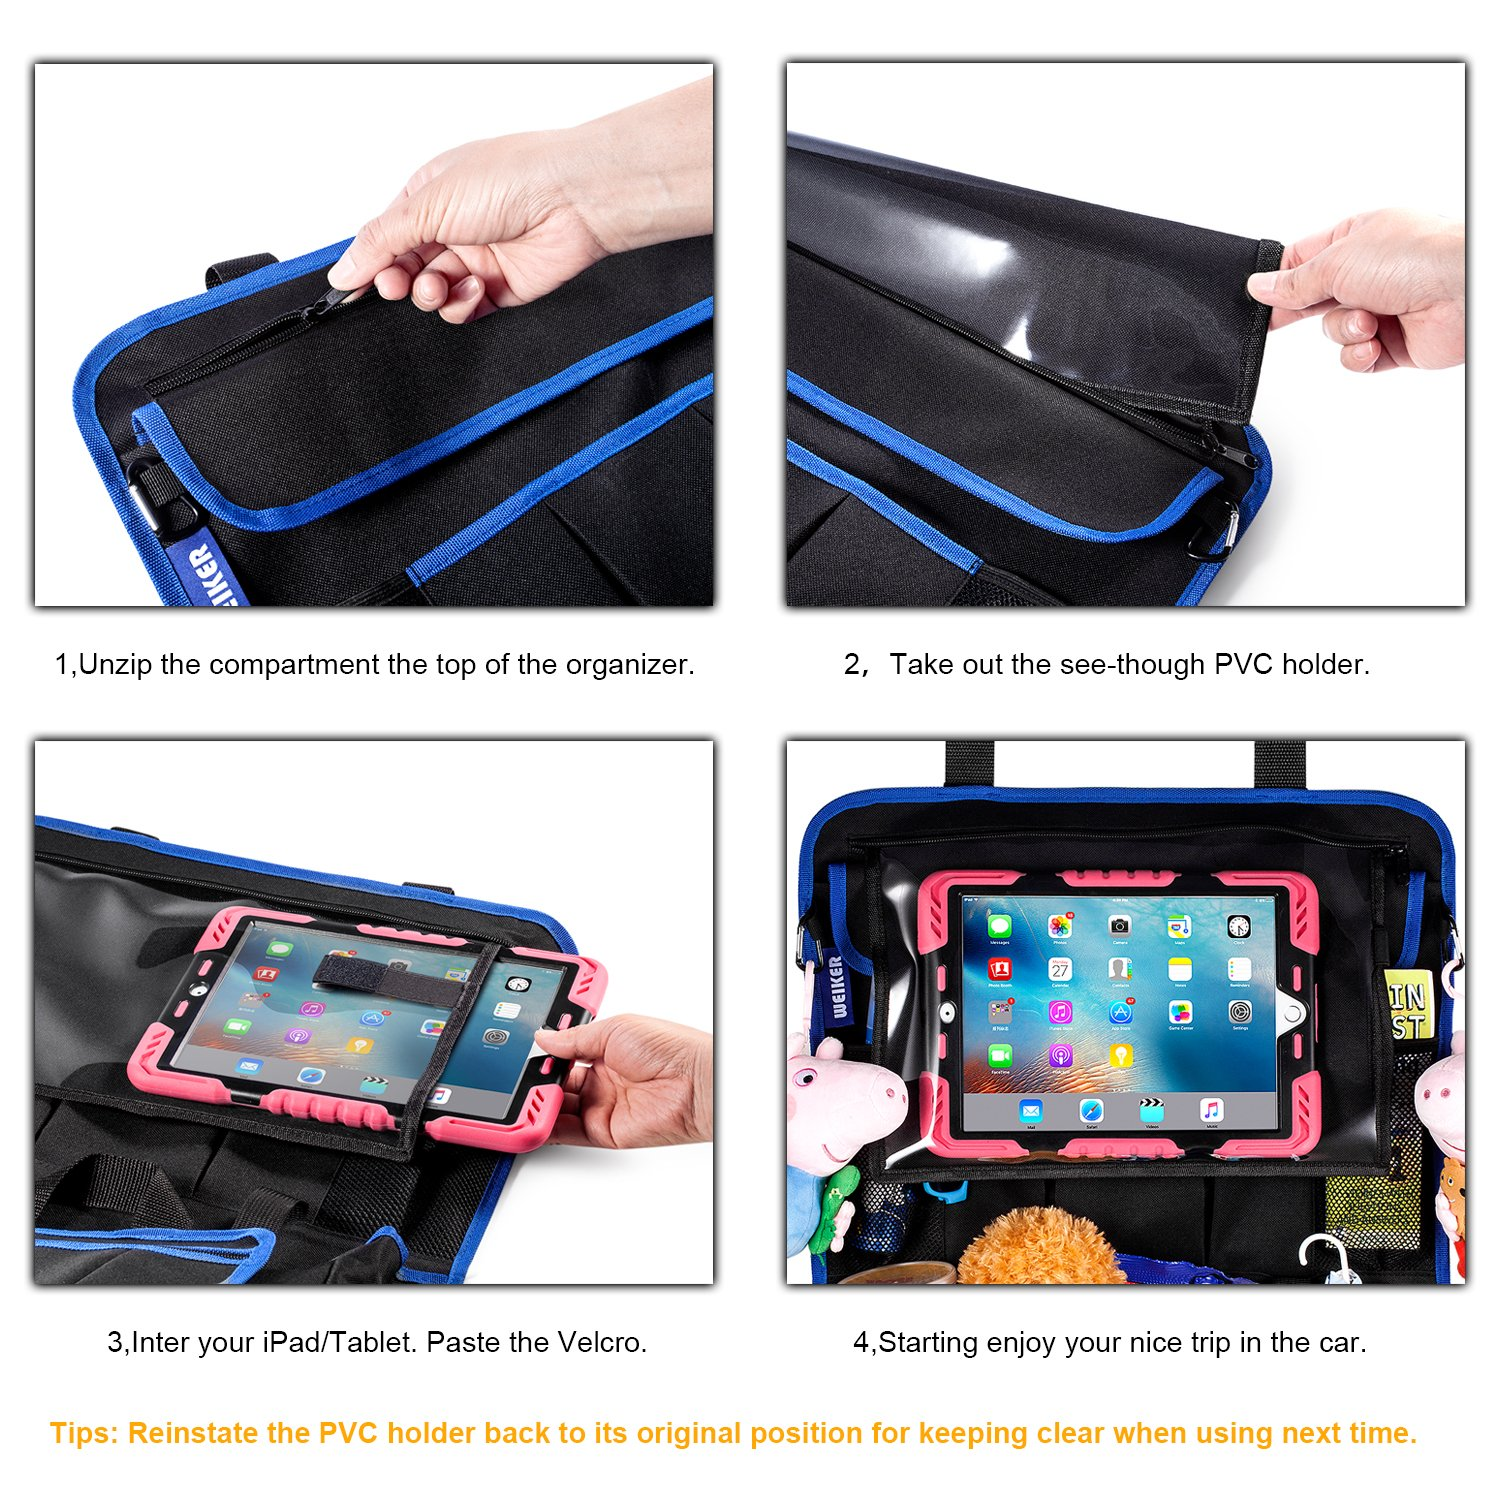 Backseat Cover Kick Mats by WEIKER JXN-WA-02 BLACK - 2 PACKS Car Back Seat Organizer Protector Travel Accessories Large Size Toy Storage Bag with 12.9 Tablet Holder for Kids